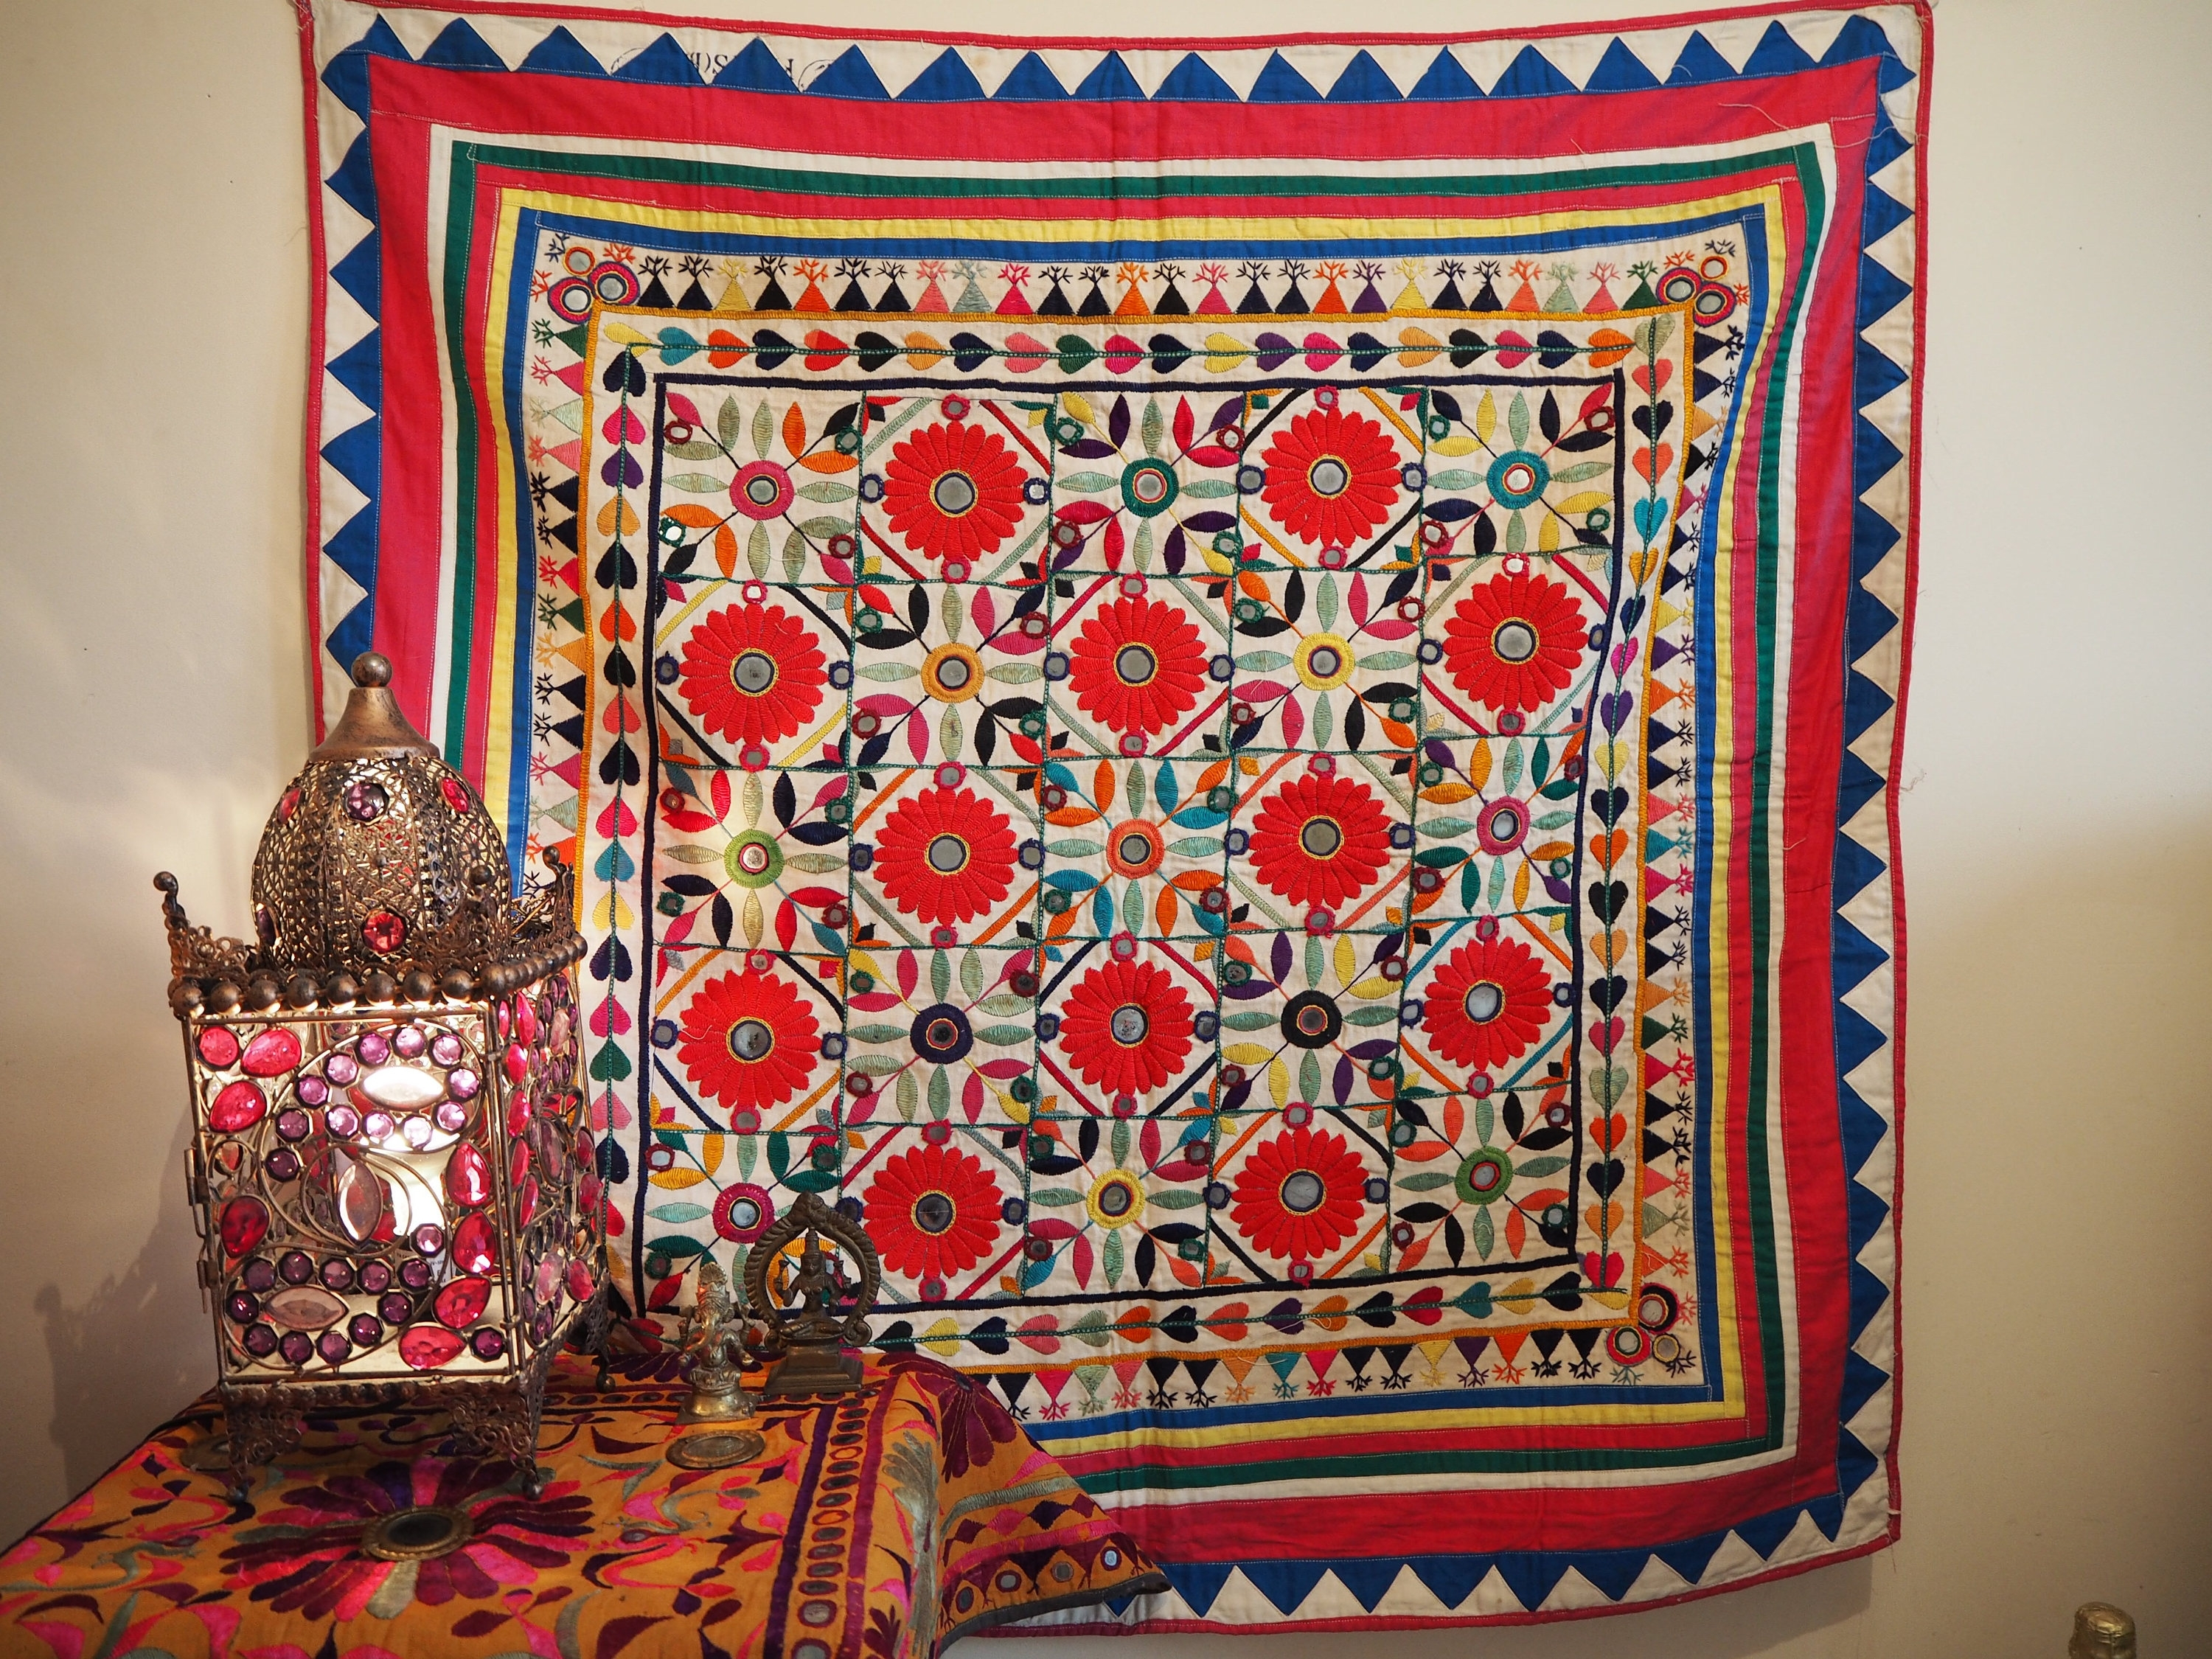 Vintage Indian Gujarat Antique Holy Temple Chakla Home Festival Regarding Recent Vintage Textile Wall Art (View 2 of 15)